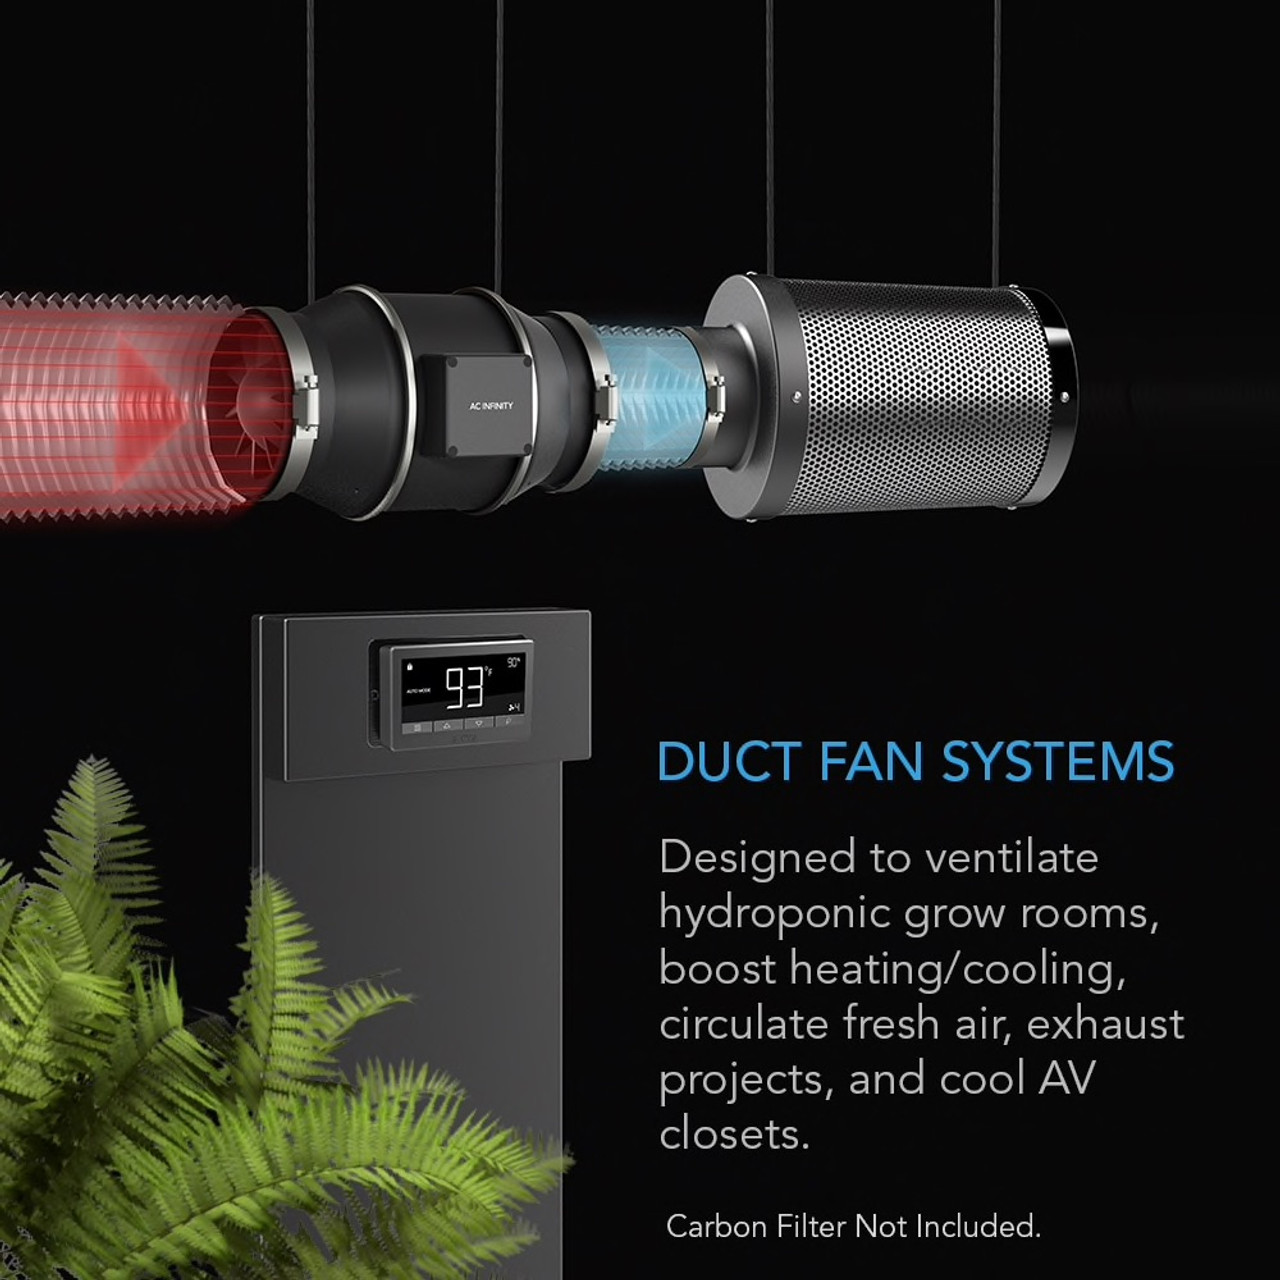 AC Infinity Cloudline In-Line Duct Fan with Thermal Control